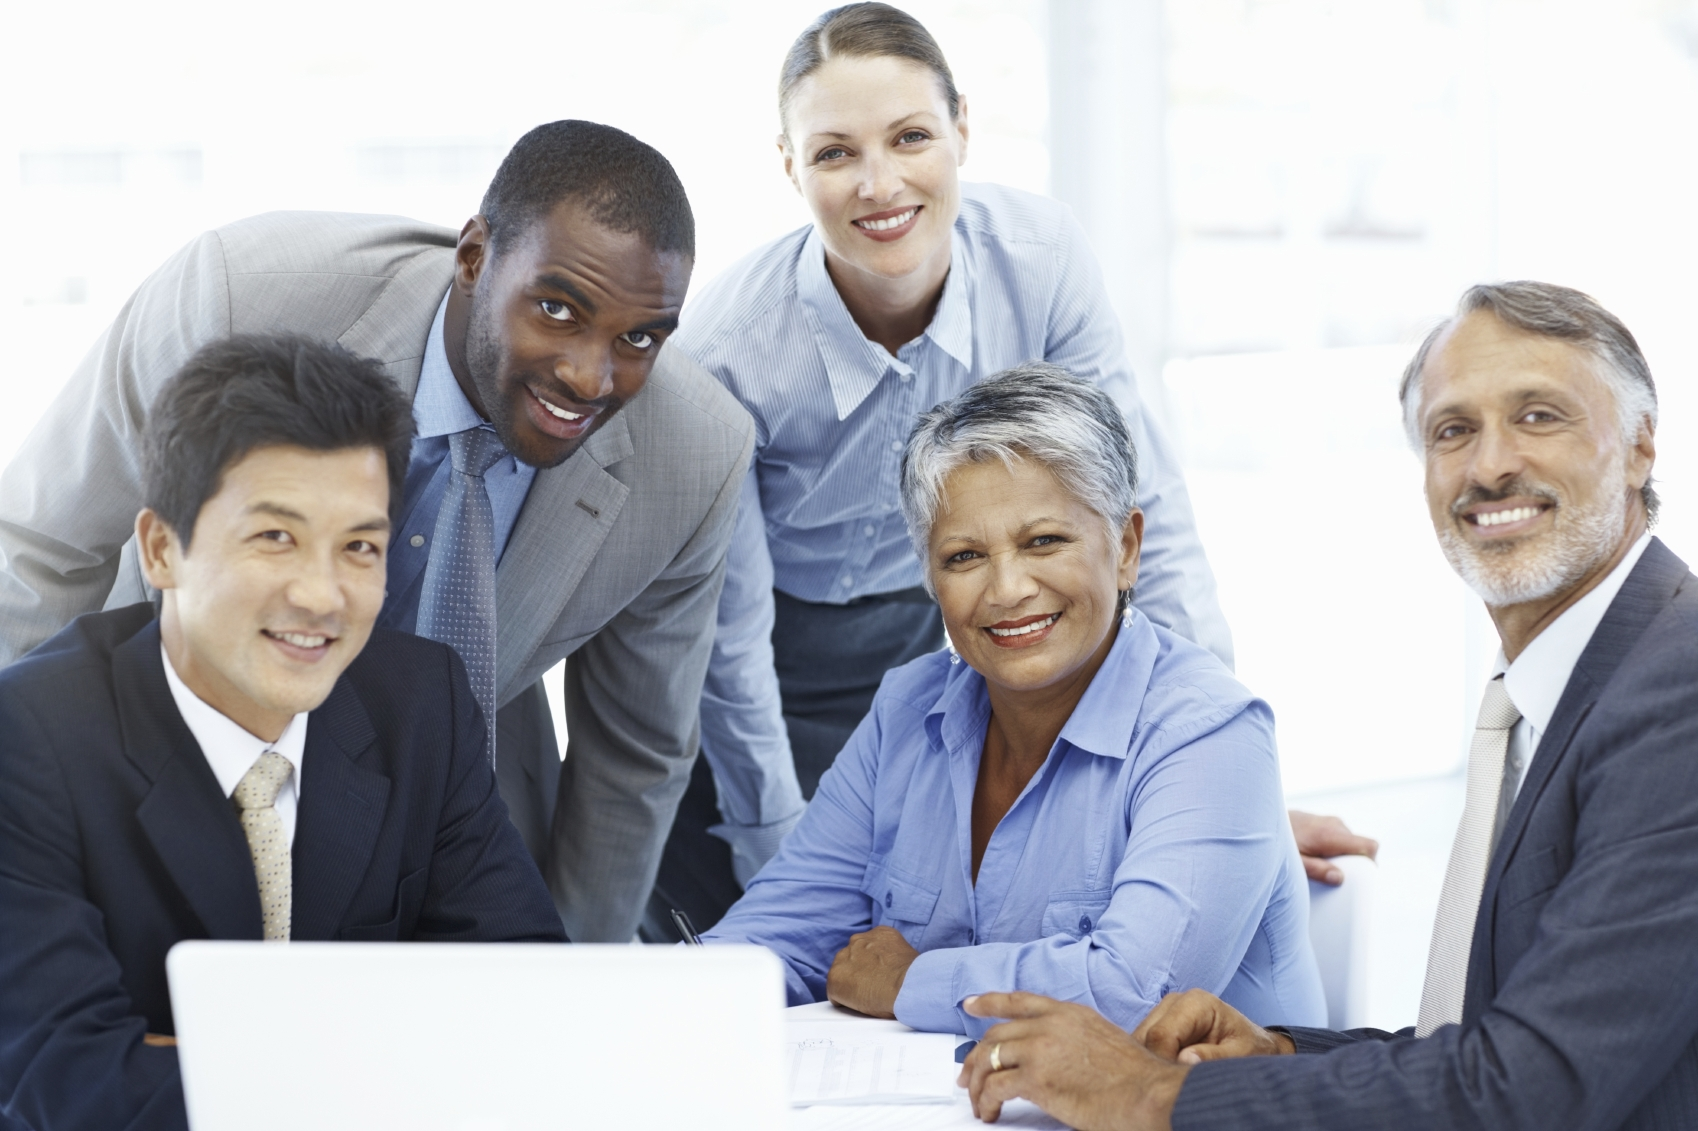 recruiting a multigenerational workforce essay Introduction generation y that closely referred to as millennial is latest member in the multigenerational workforce in fact they are the newest.